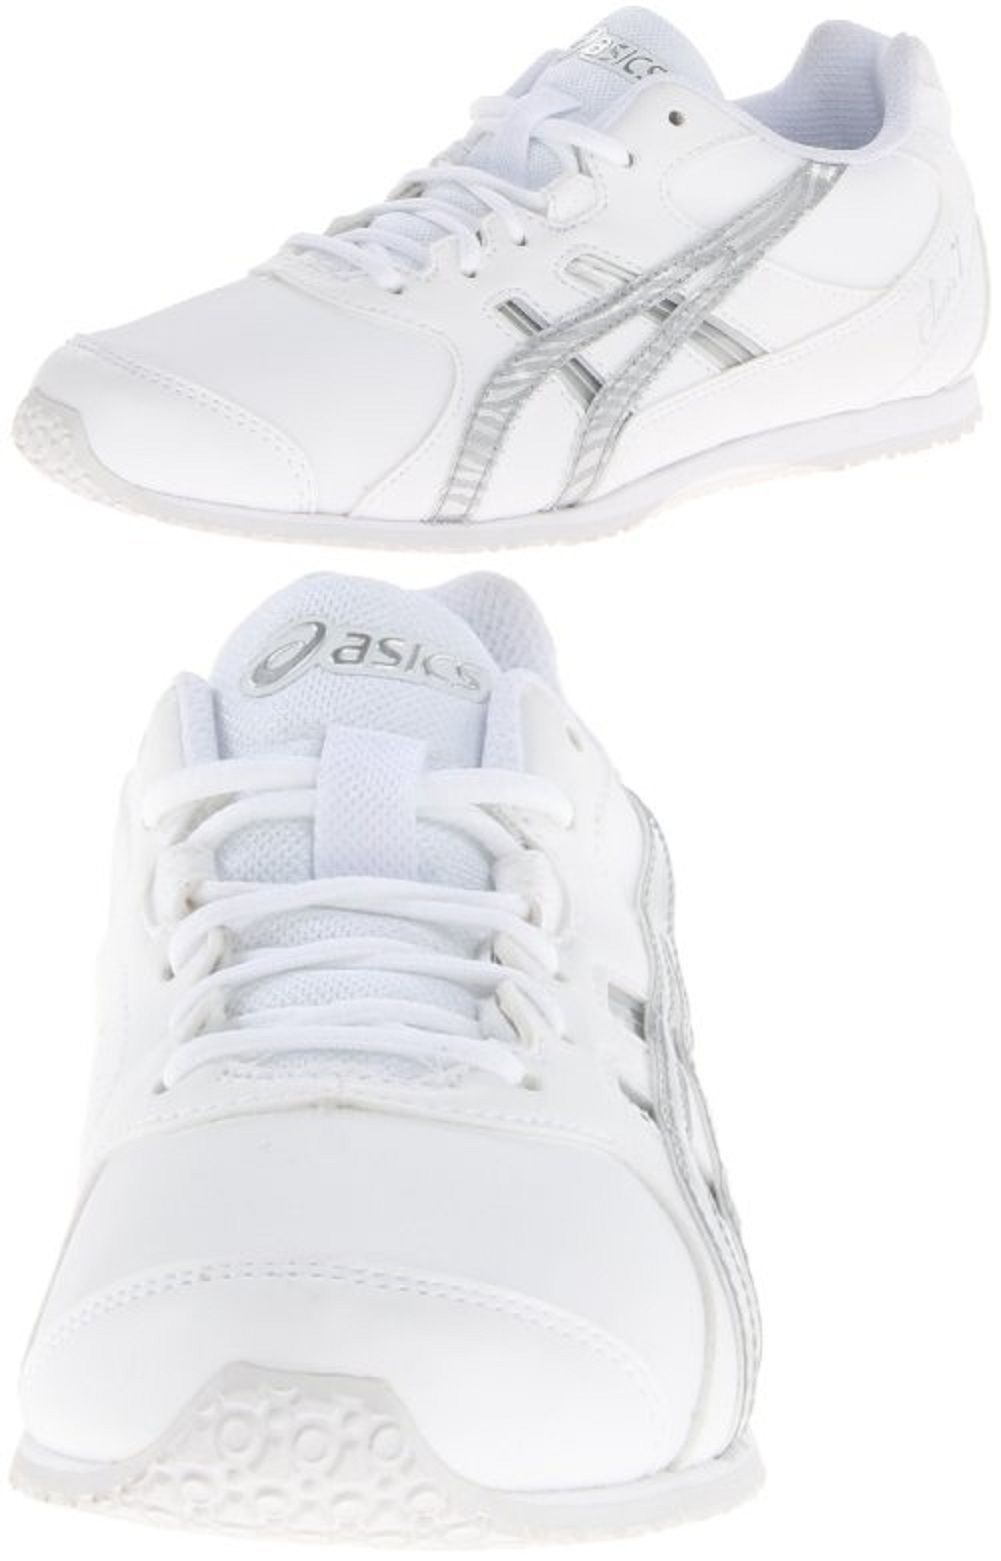 75e32d9b9e28 Unisex Shoes 155202  New Asics Cheer 7 Gs Cheerleading Shoe White And  Silver Kids Size K12 -  BUY IT NOW ONLY   40.5 on eBay!